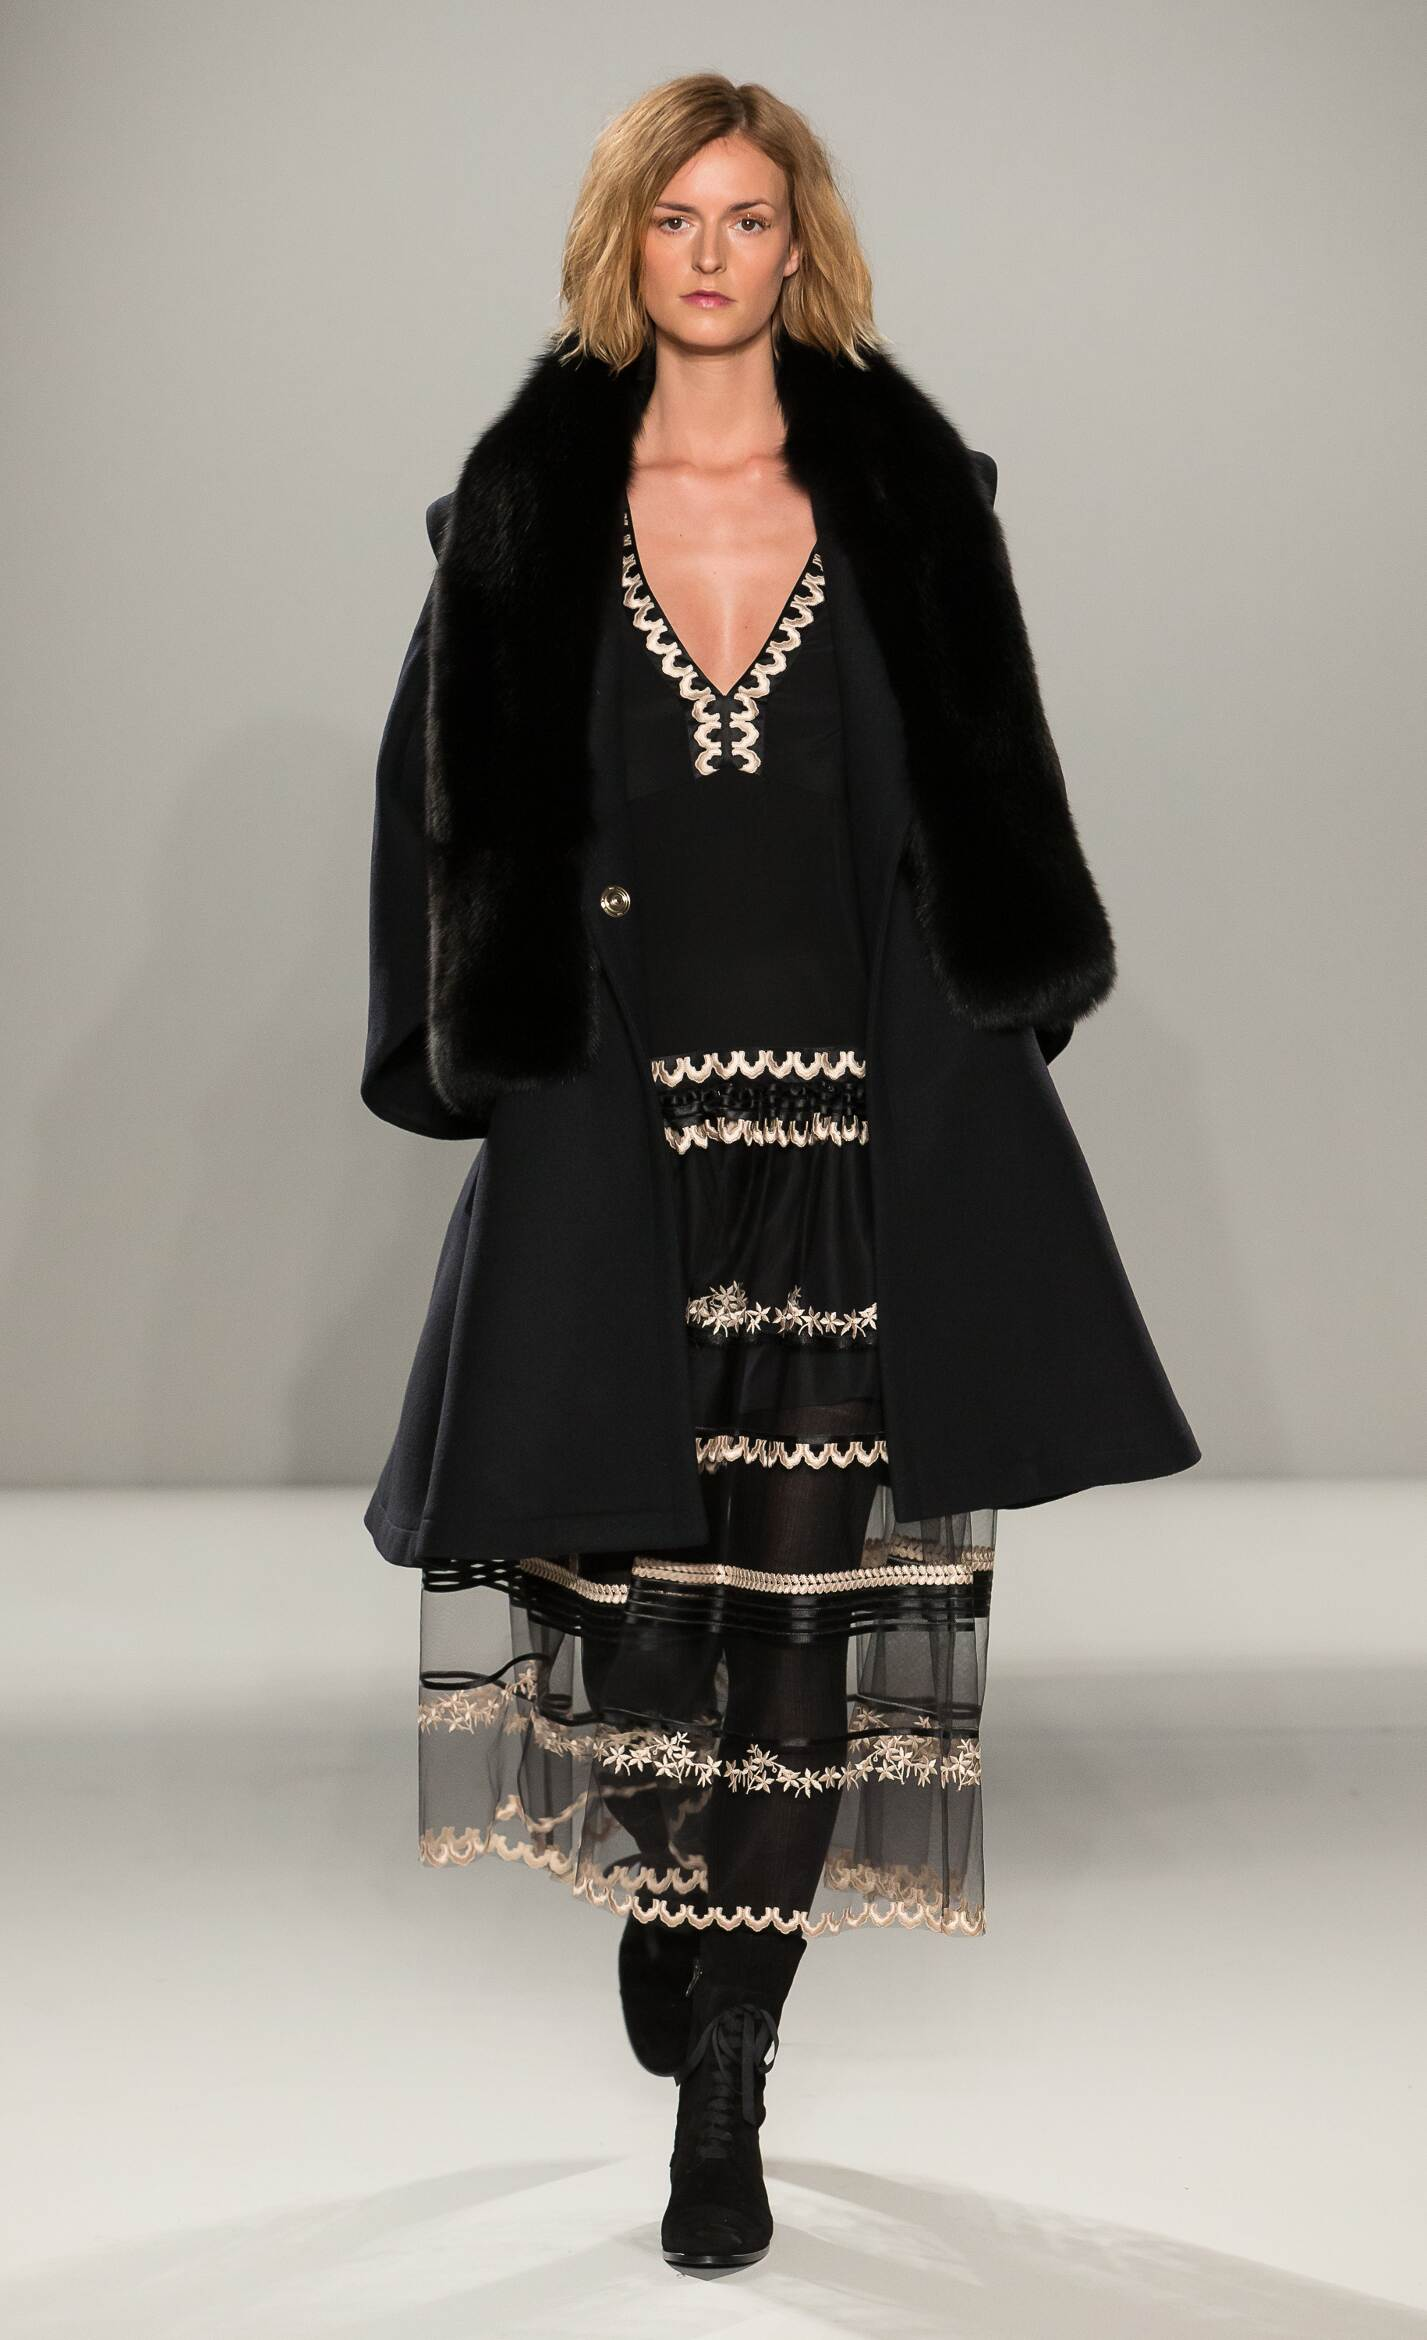 Temperley London Women's Collection 2015 2016